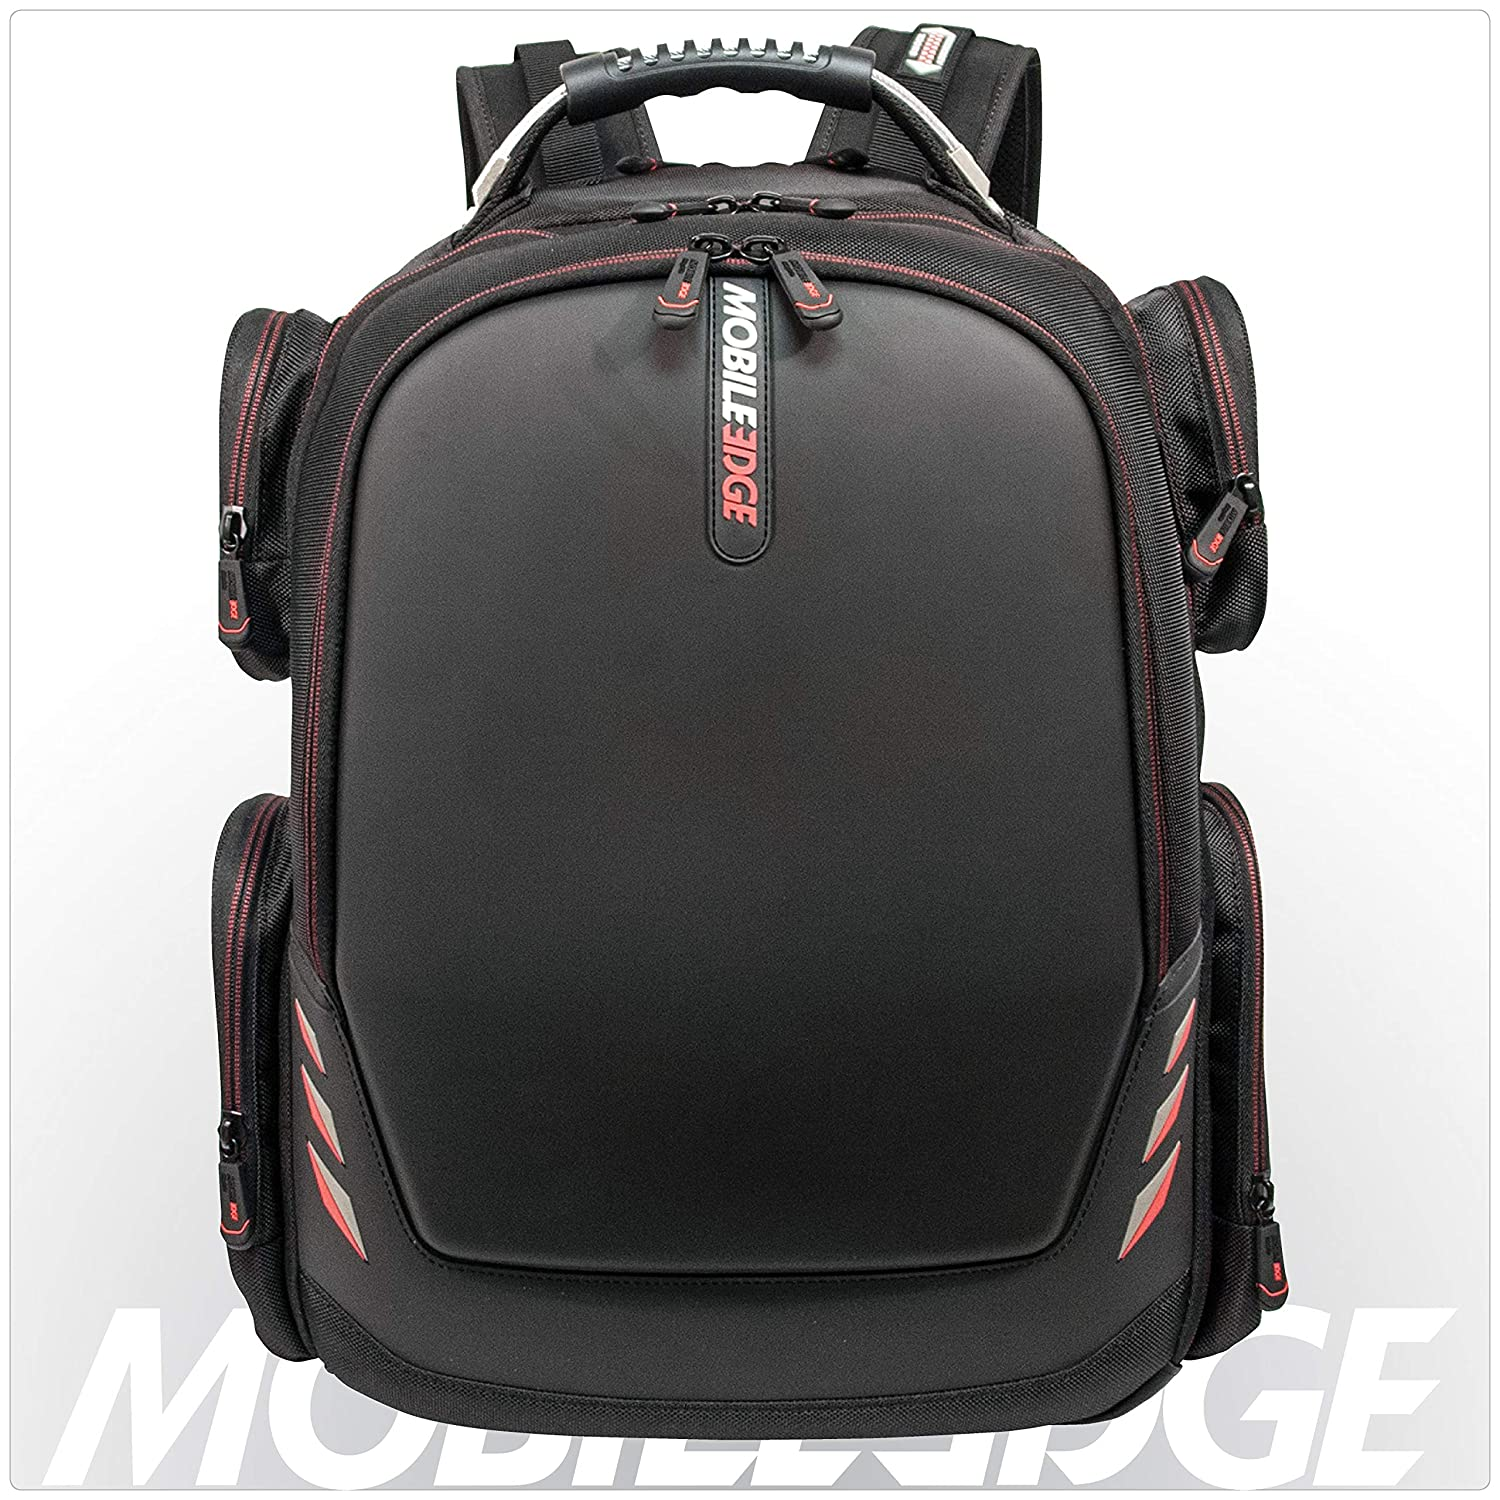 mobile edge core gaming laptop backpack